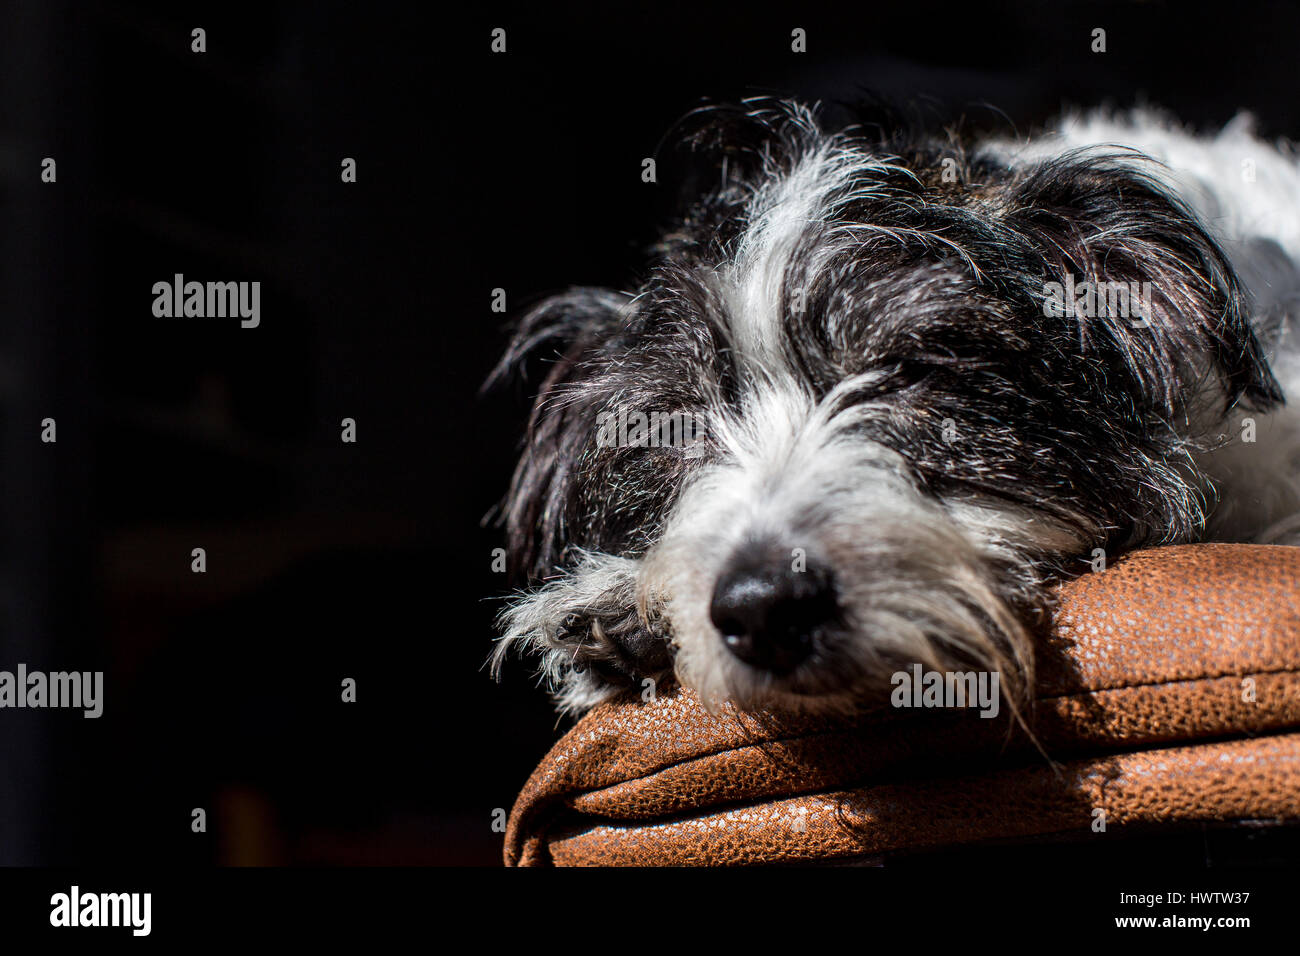 a black and white dog (cross between Jack Russell and Bichon Frise ) relaxes in a shaft of light while resting on - Stock Image